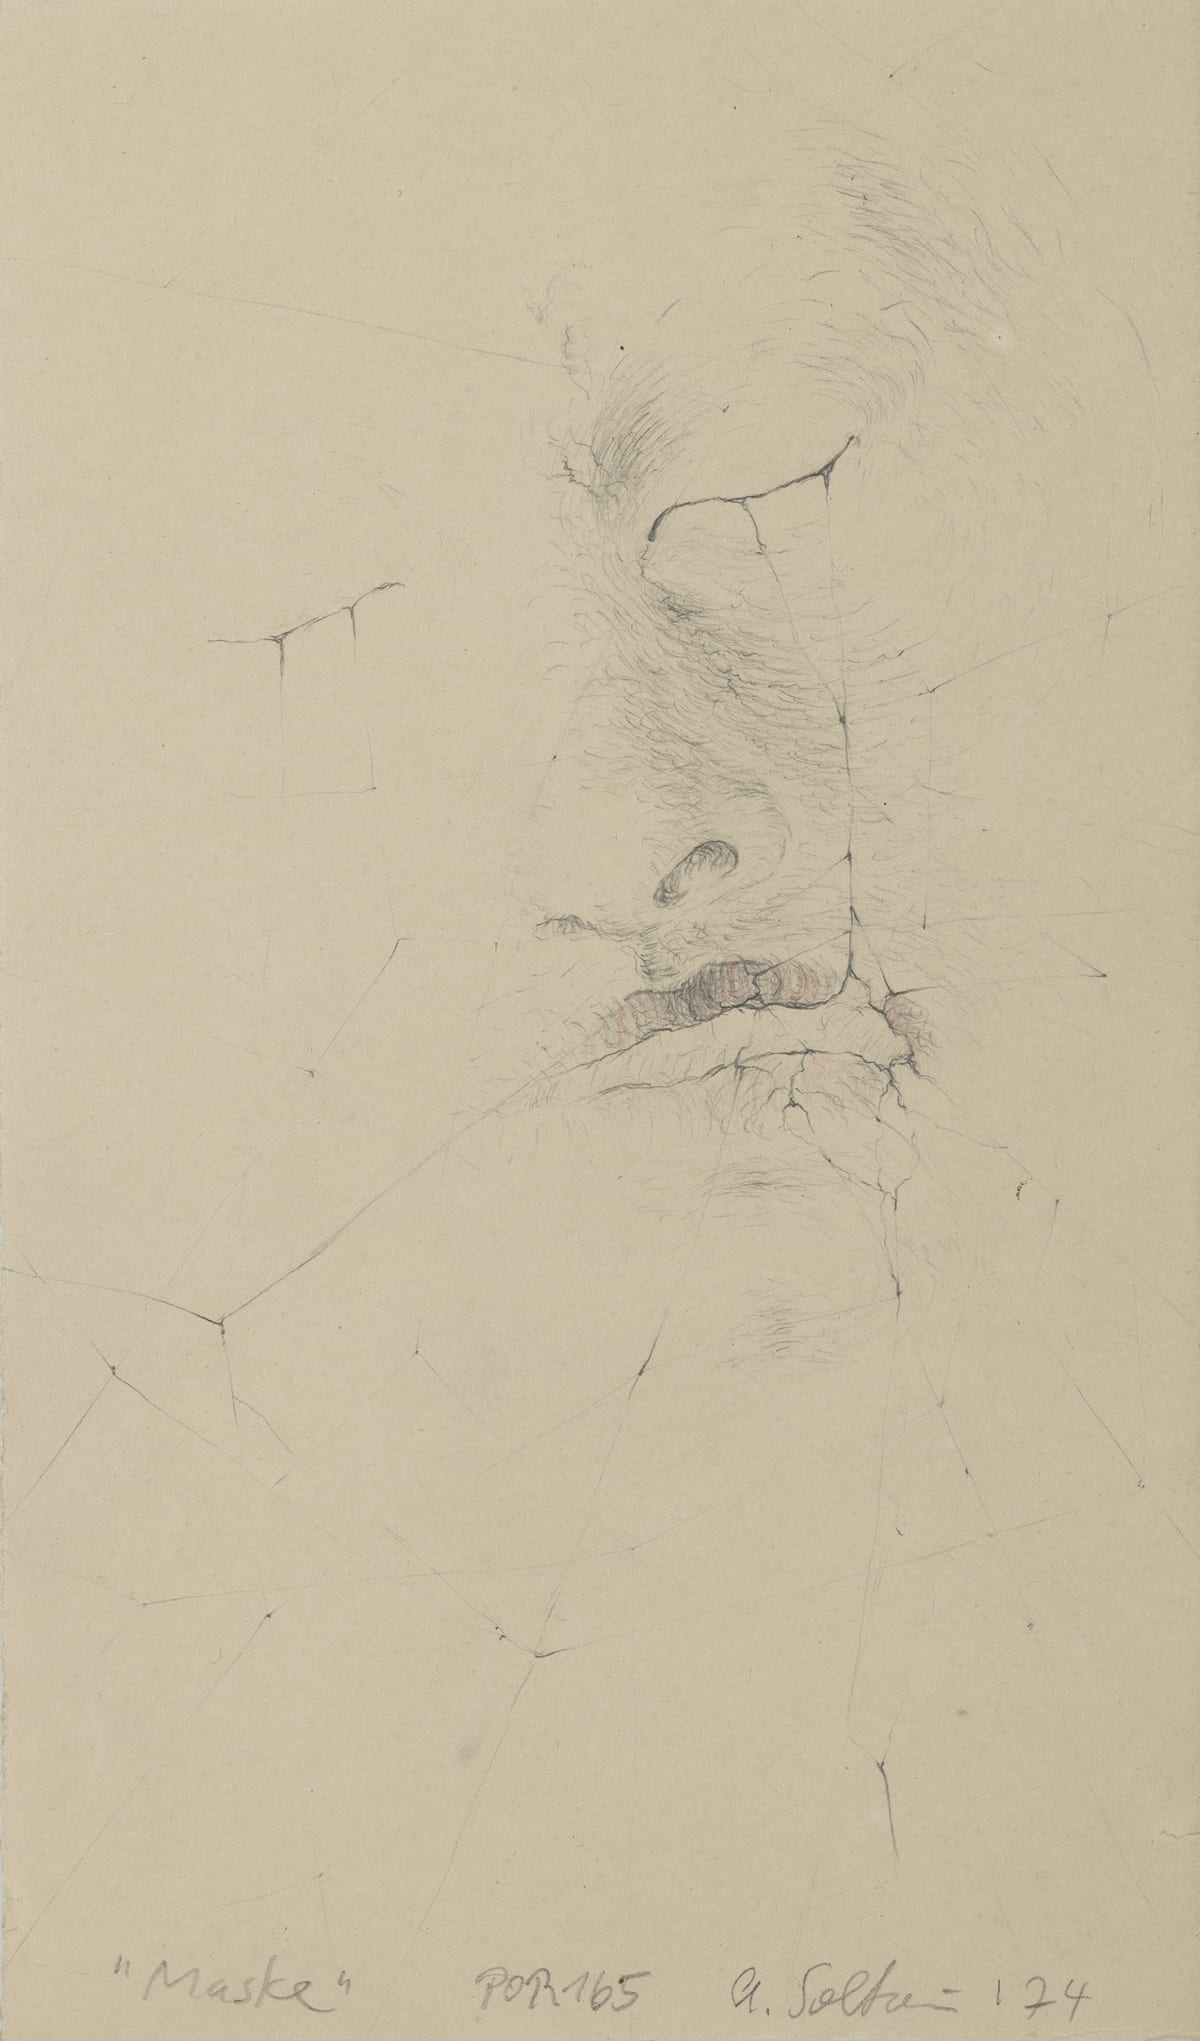 Annegret SOLTAU Maske (Selbst) / Mask (self), 1974 Pencil and crayon on paper Image size: 21 x 12.5 cm